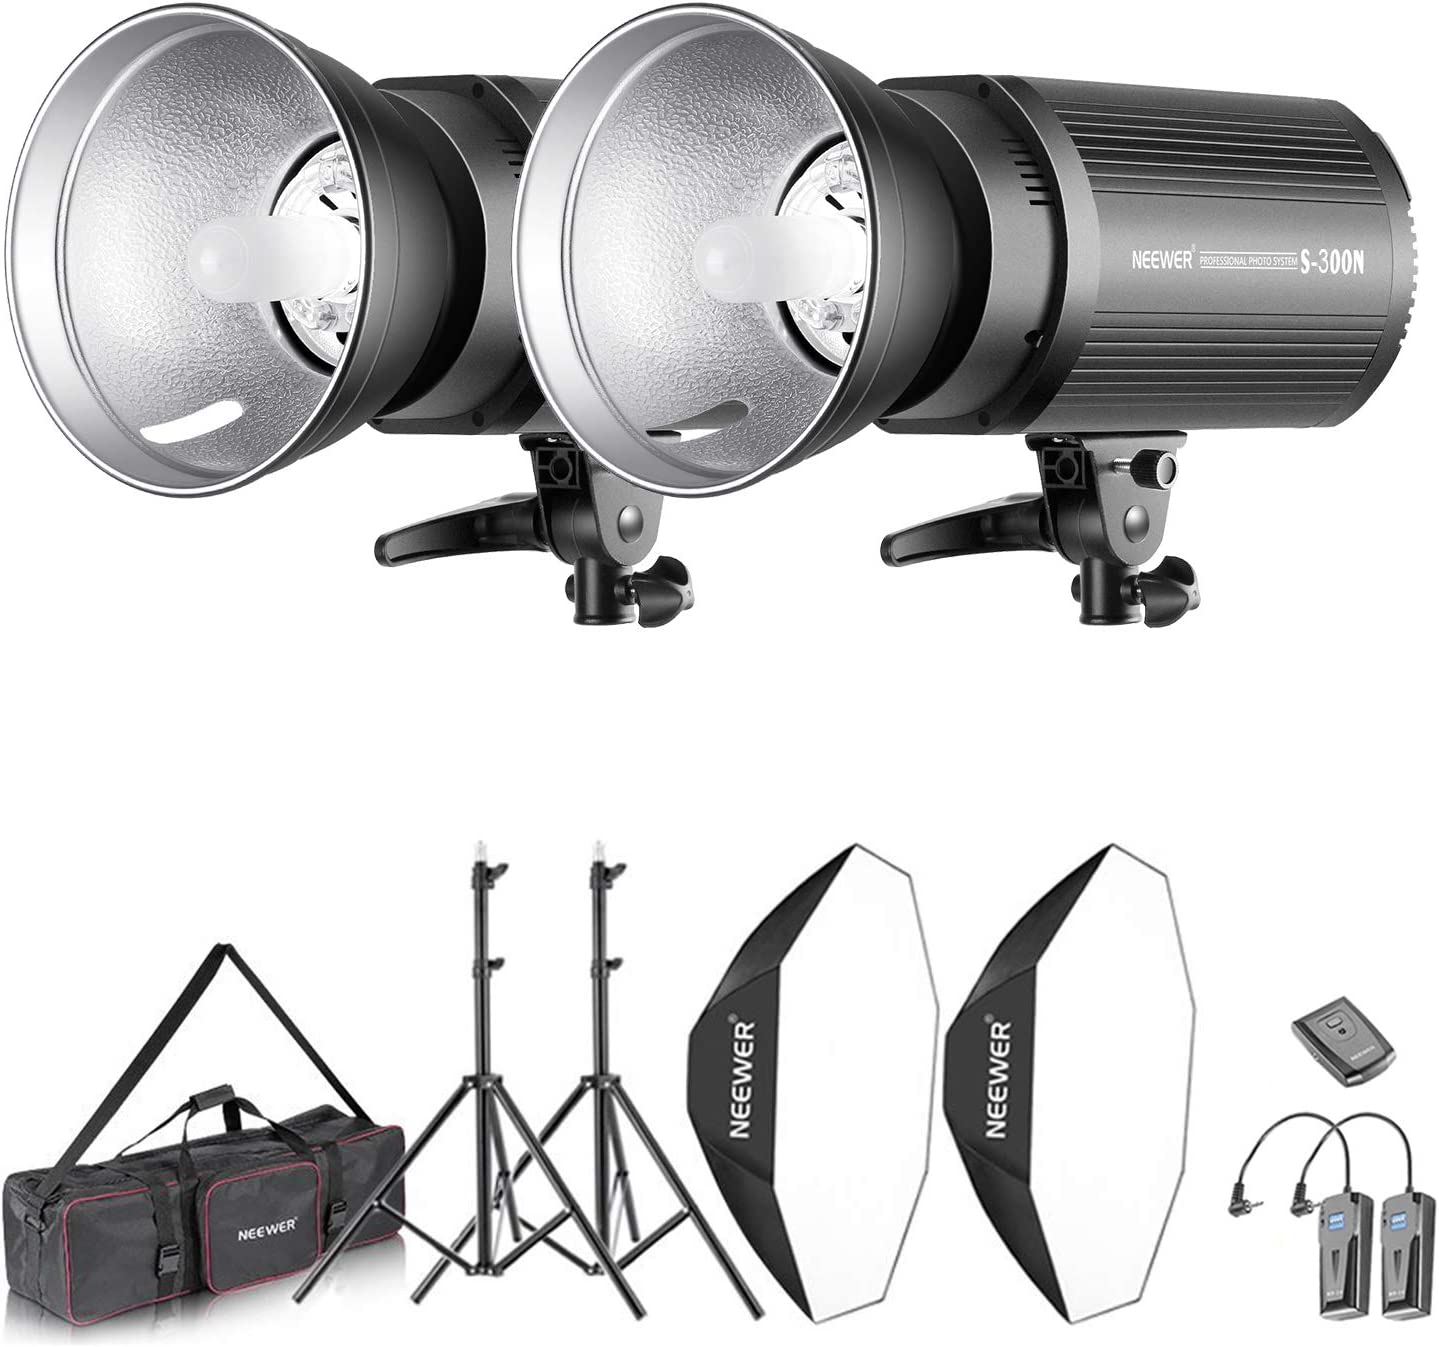 Neewer Flash Estroboscópico 600W Kit Iluminación:(2)300W Monoluz (2)Reflector (2)Soporte de Luz (2) Softbox (2)Lámpara de Modelado (1)RT-16 Disparador Inalámbrico (1)Bolsa